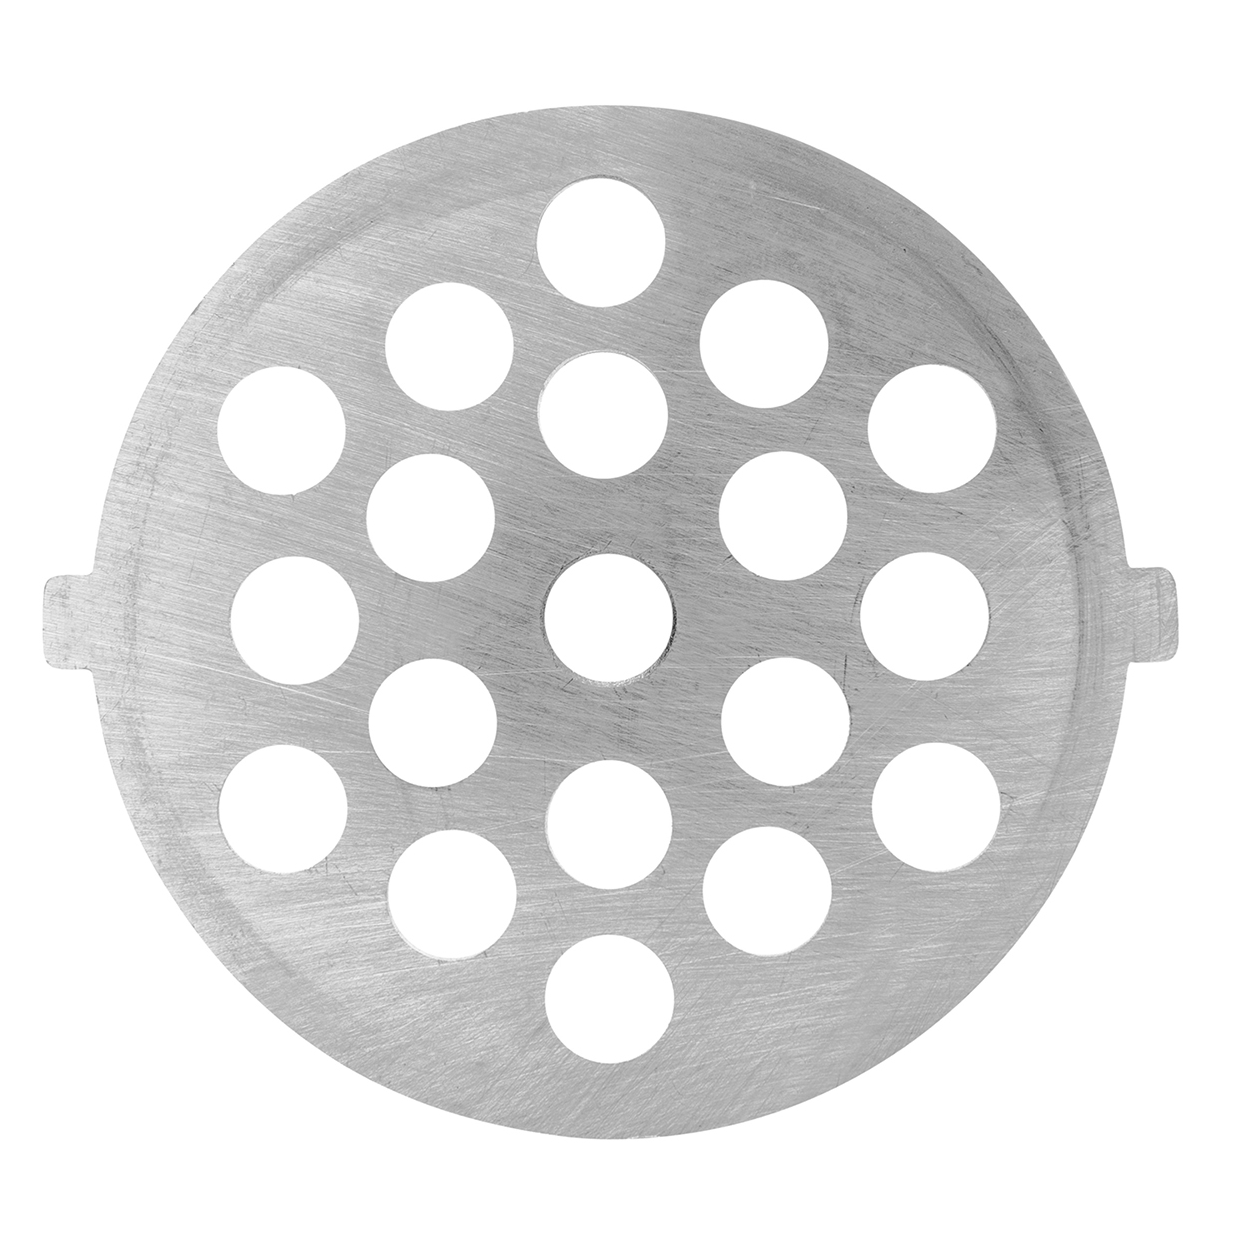 luvele-eu - 8mm Stainless Steel Cutting Plate for the Luvele Meat grinder